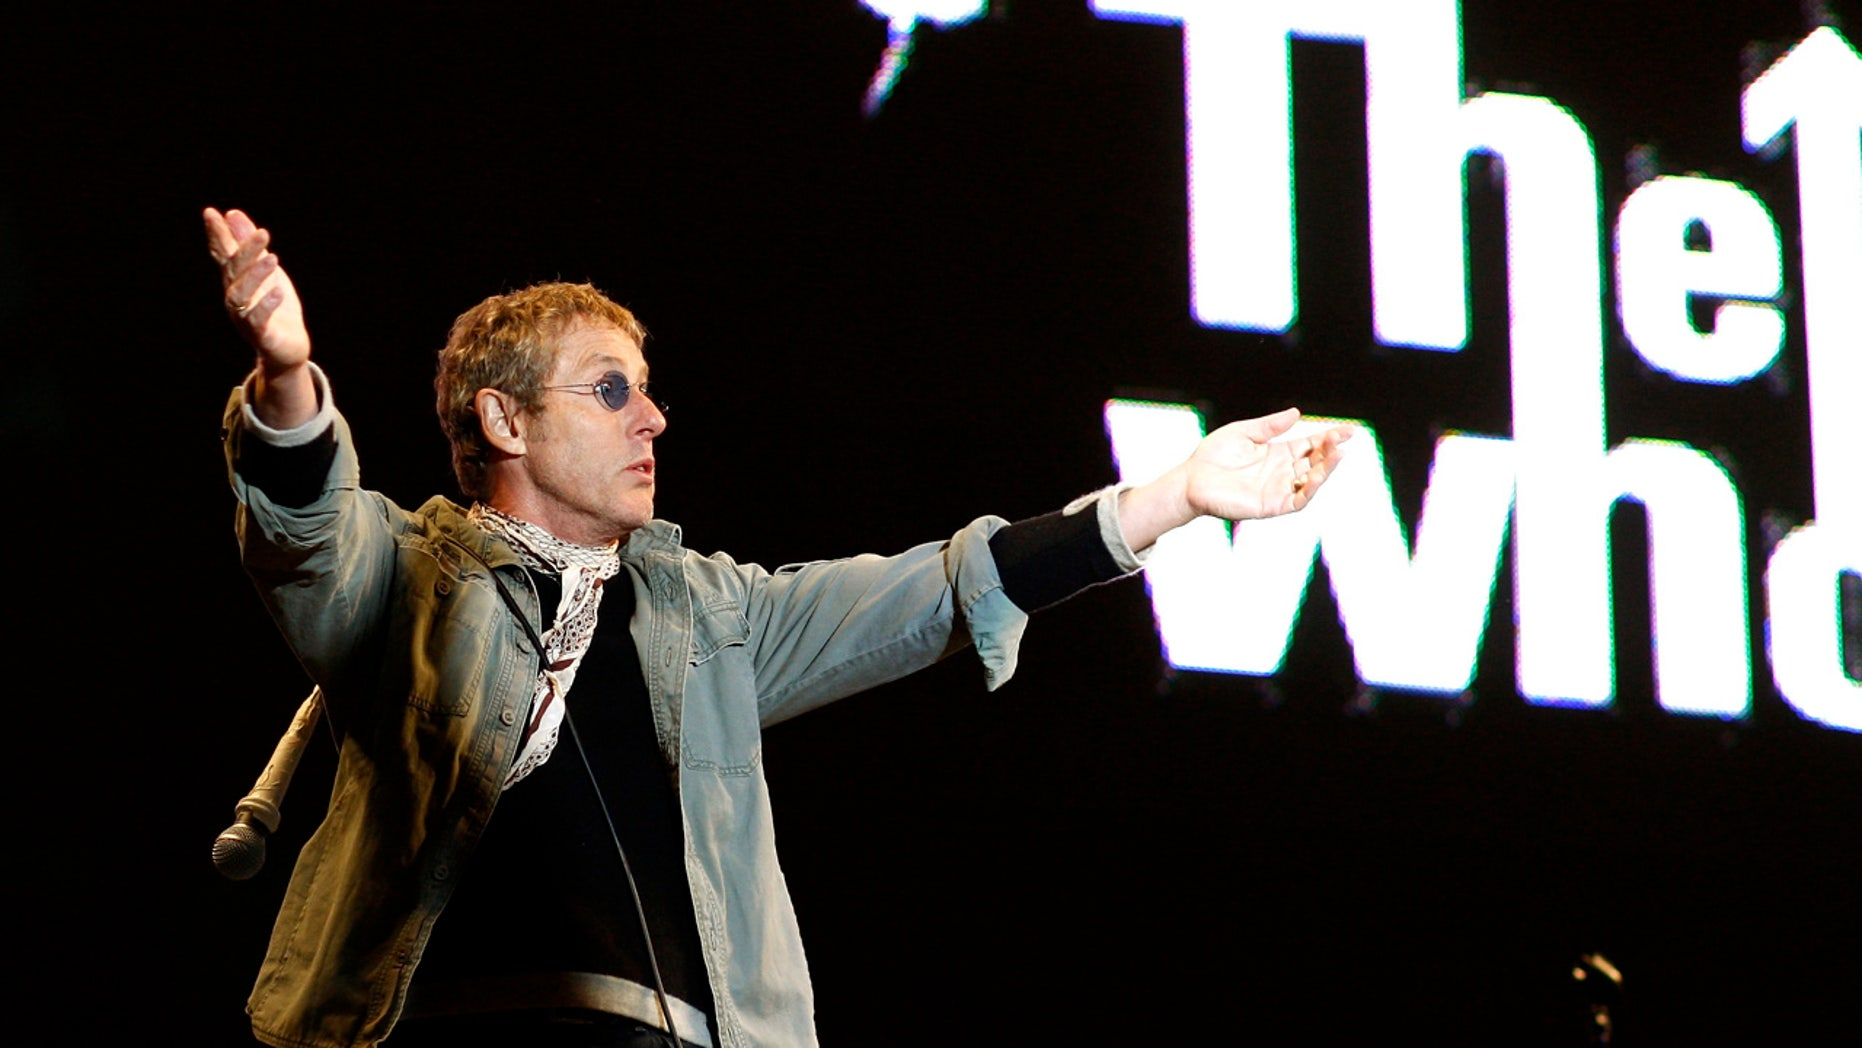 Lead singer Roger Daltrey told fans at a Madison Square Garden Who concert Monday that he is allergic to marijuana.?